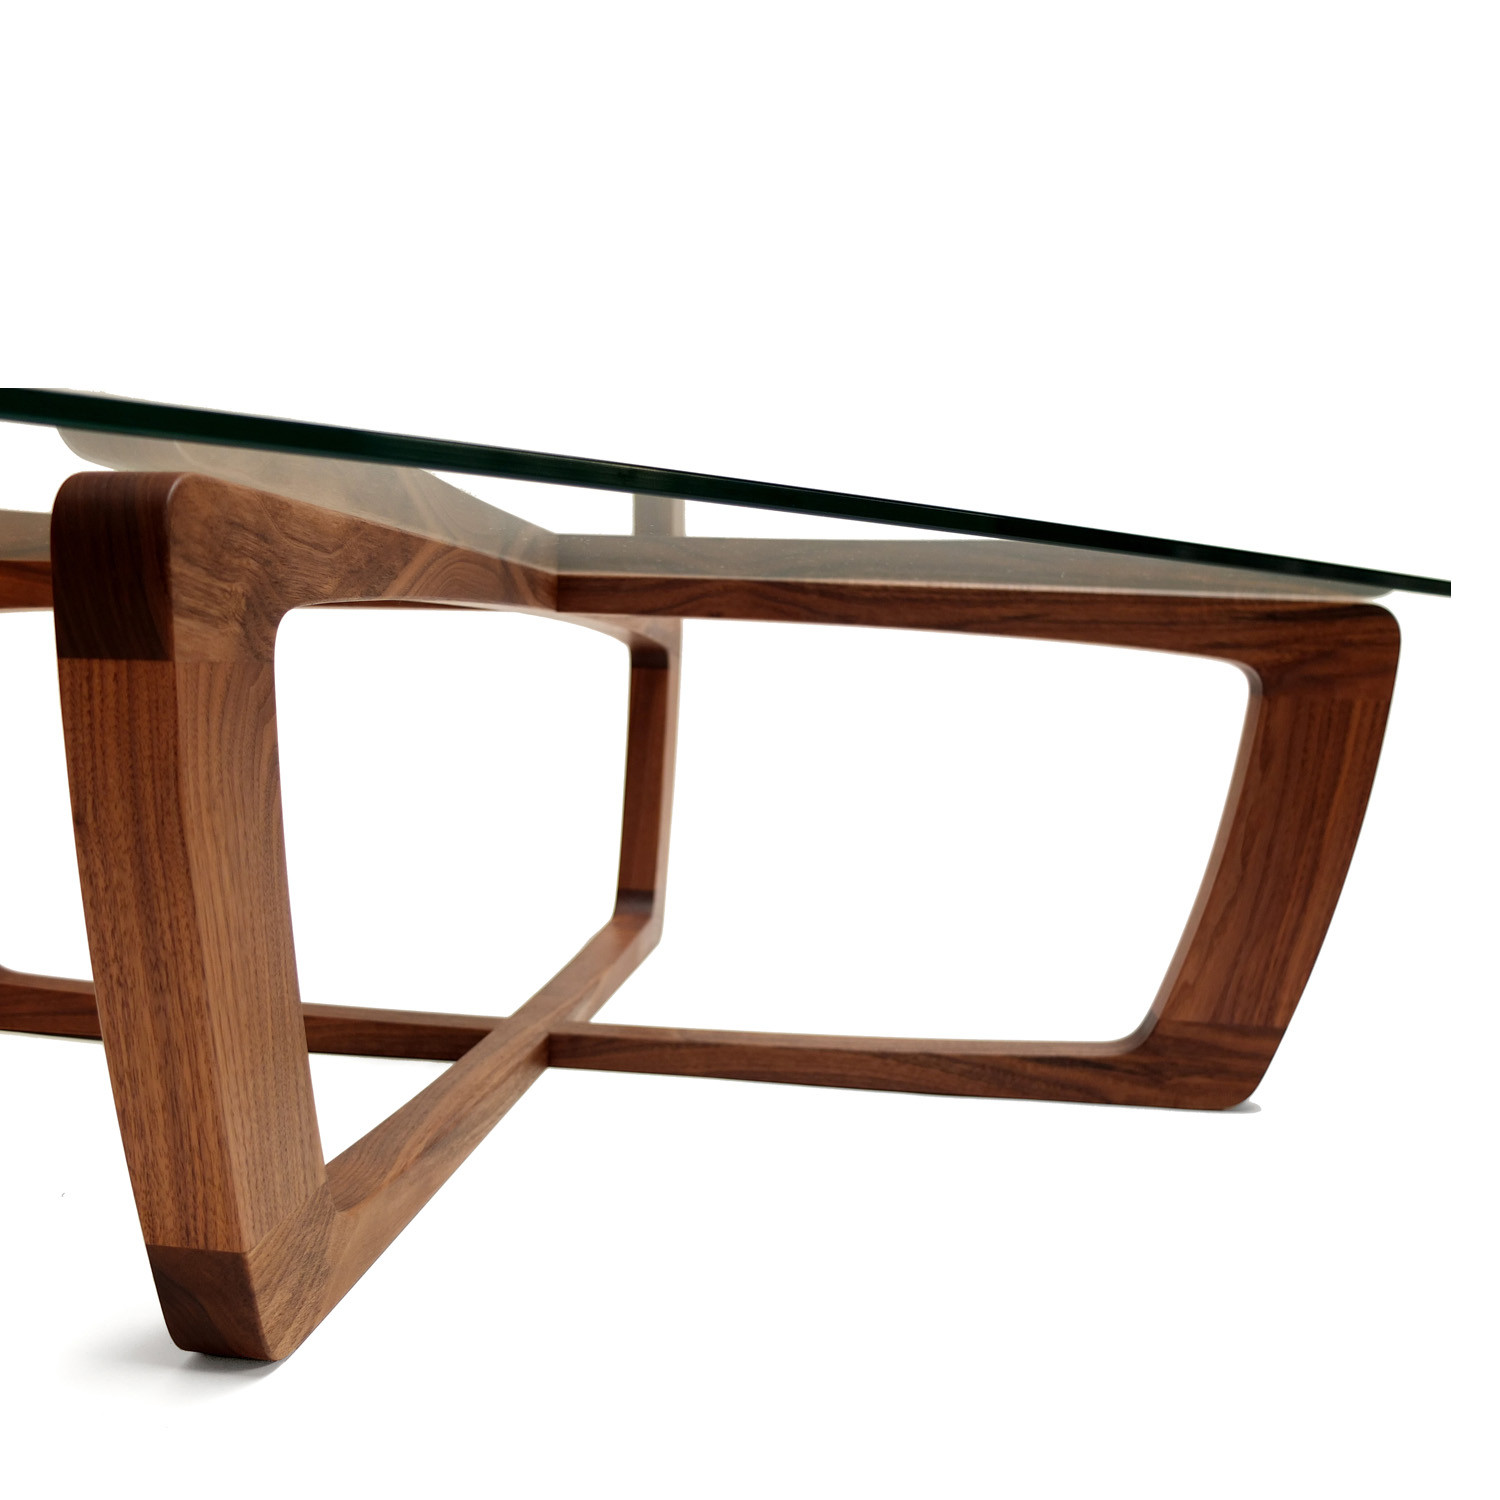 Kustom Coffee Table